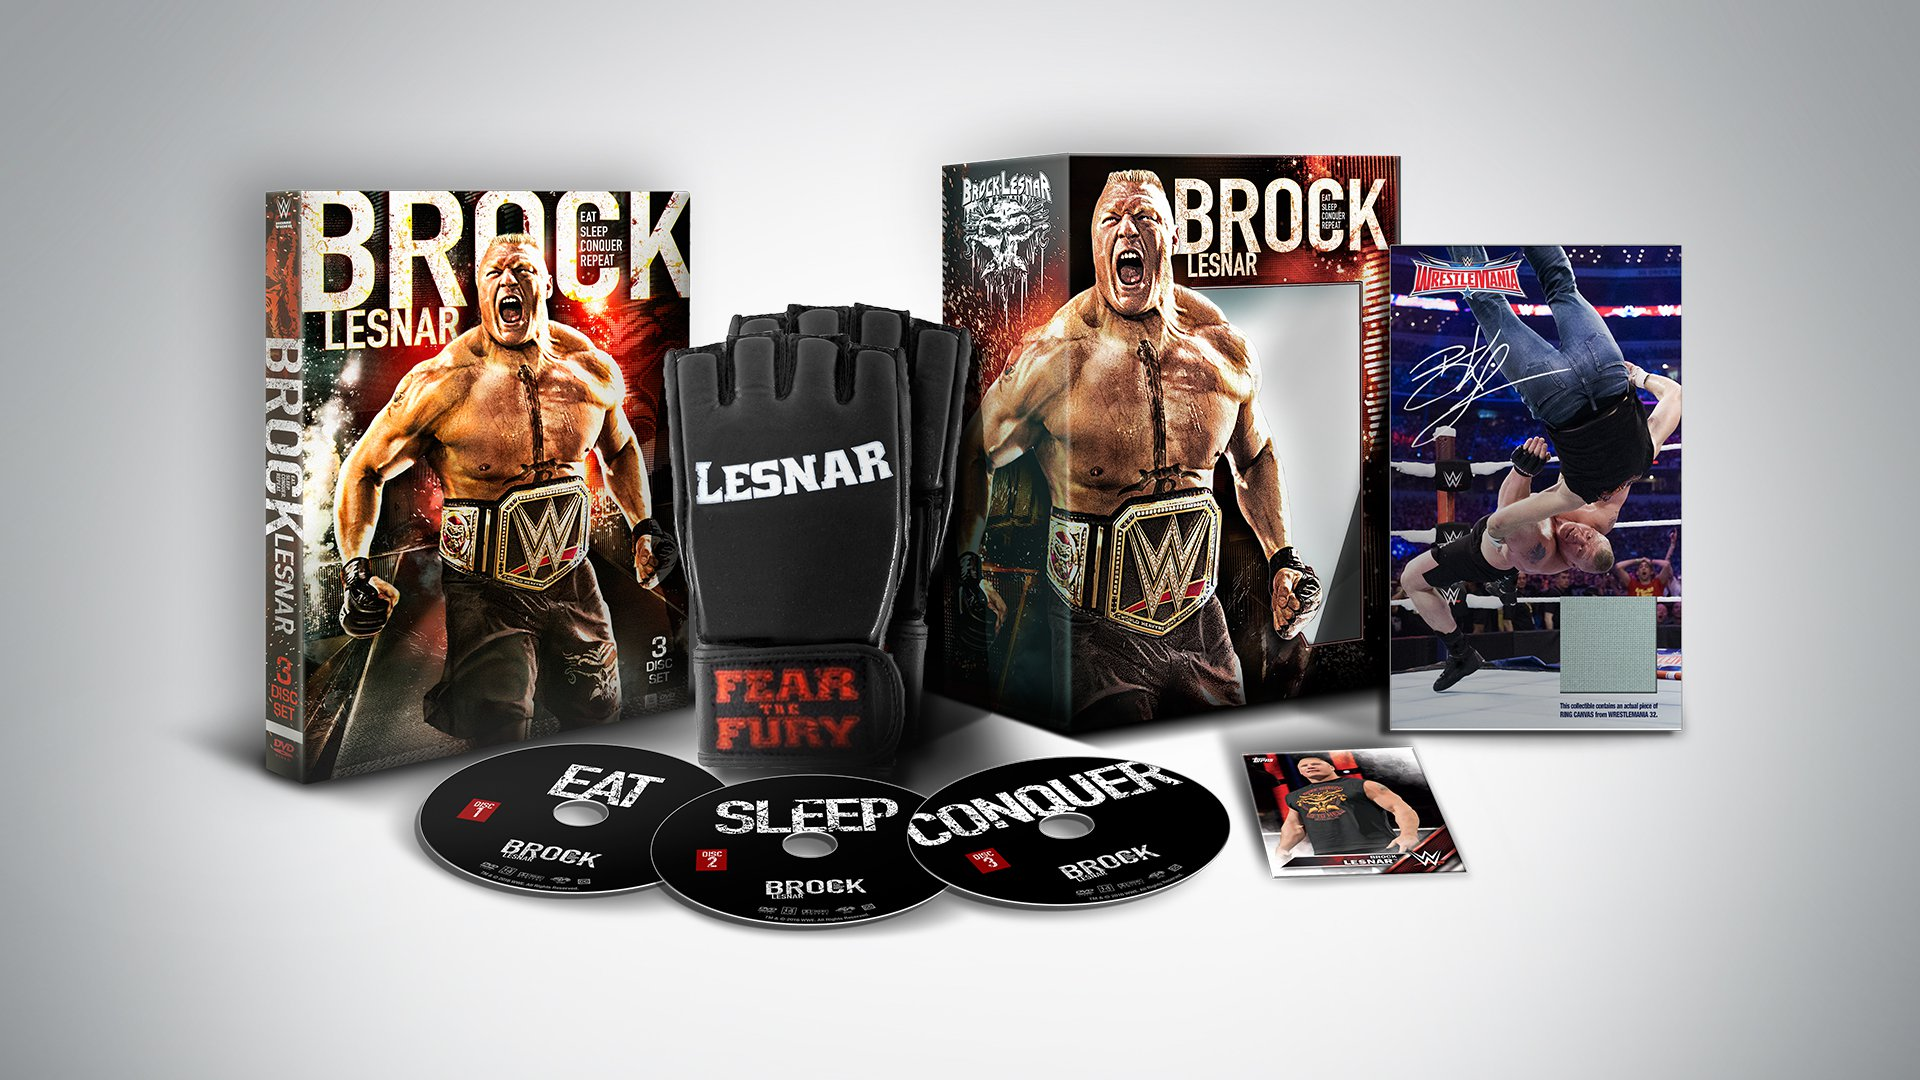 Get The Brock Lesnar Eat Sleep Conquer Repeat Blu Ray DVD Collectors Set Oct 11